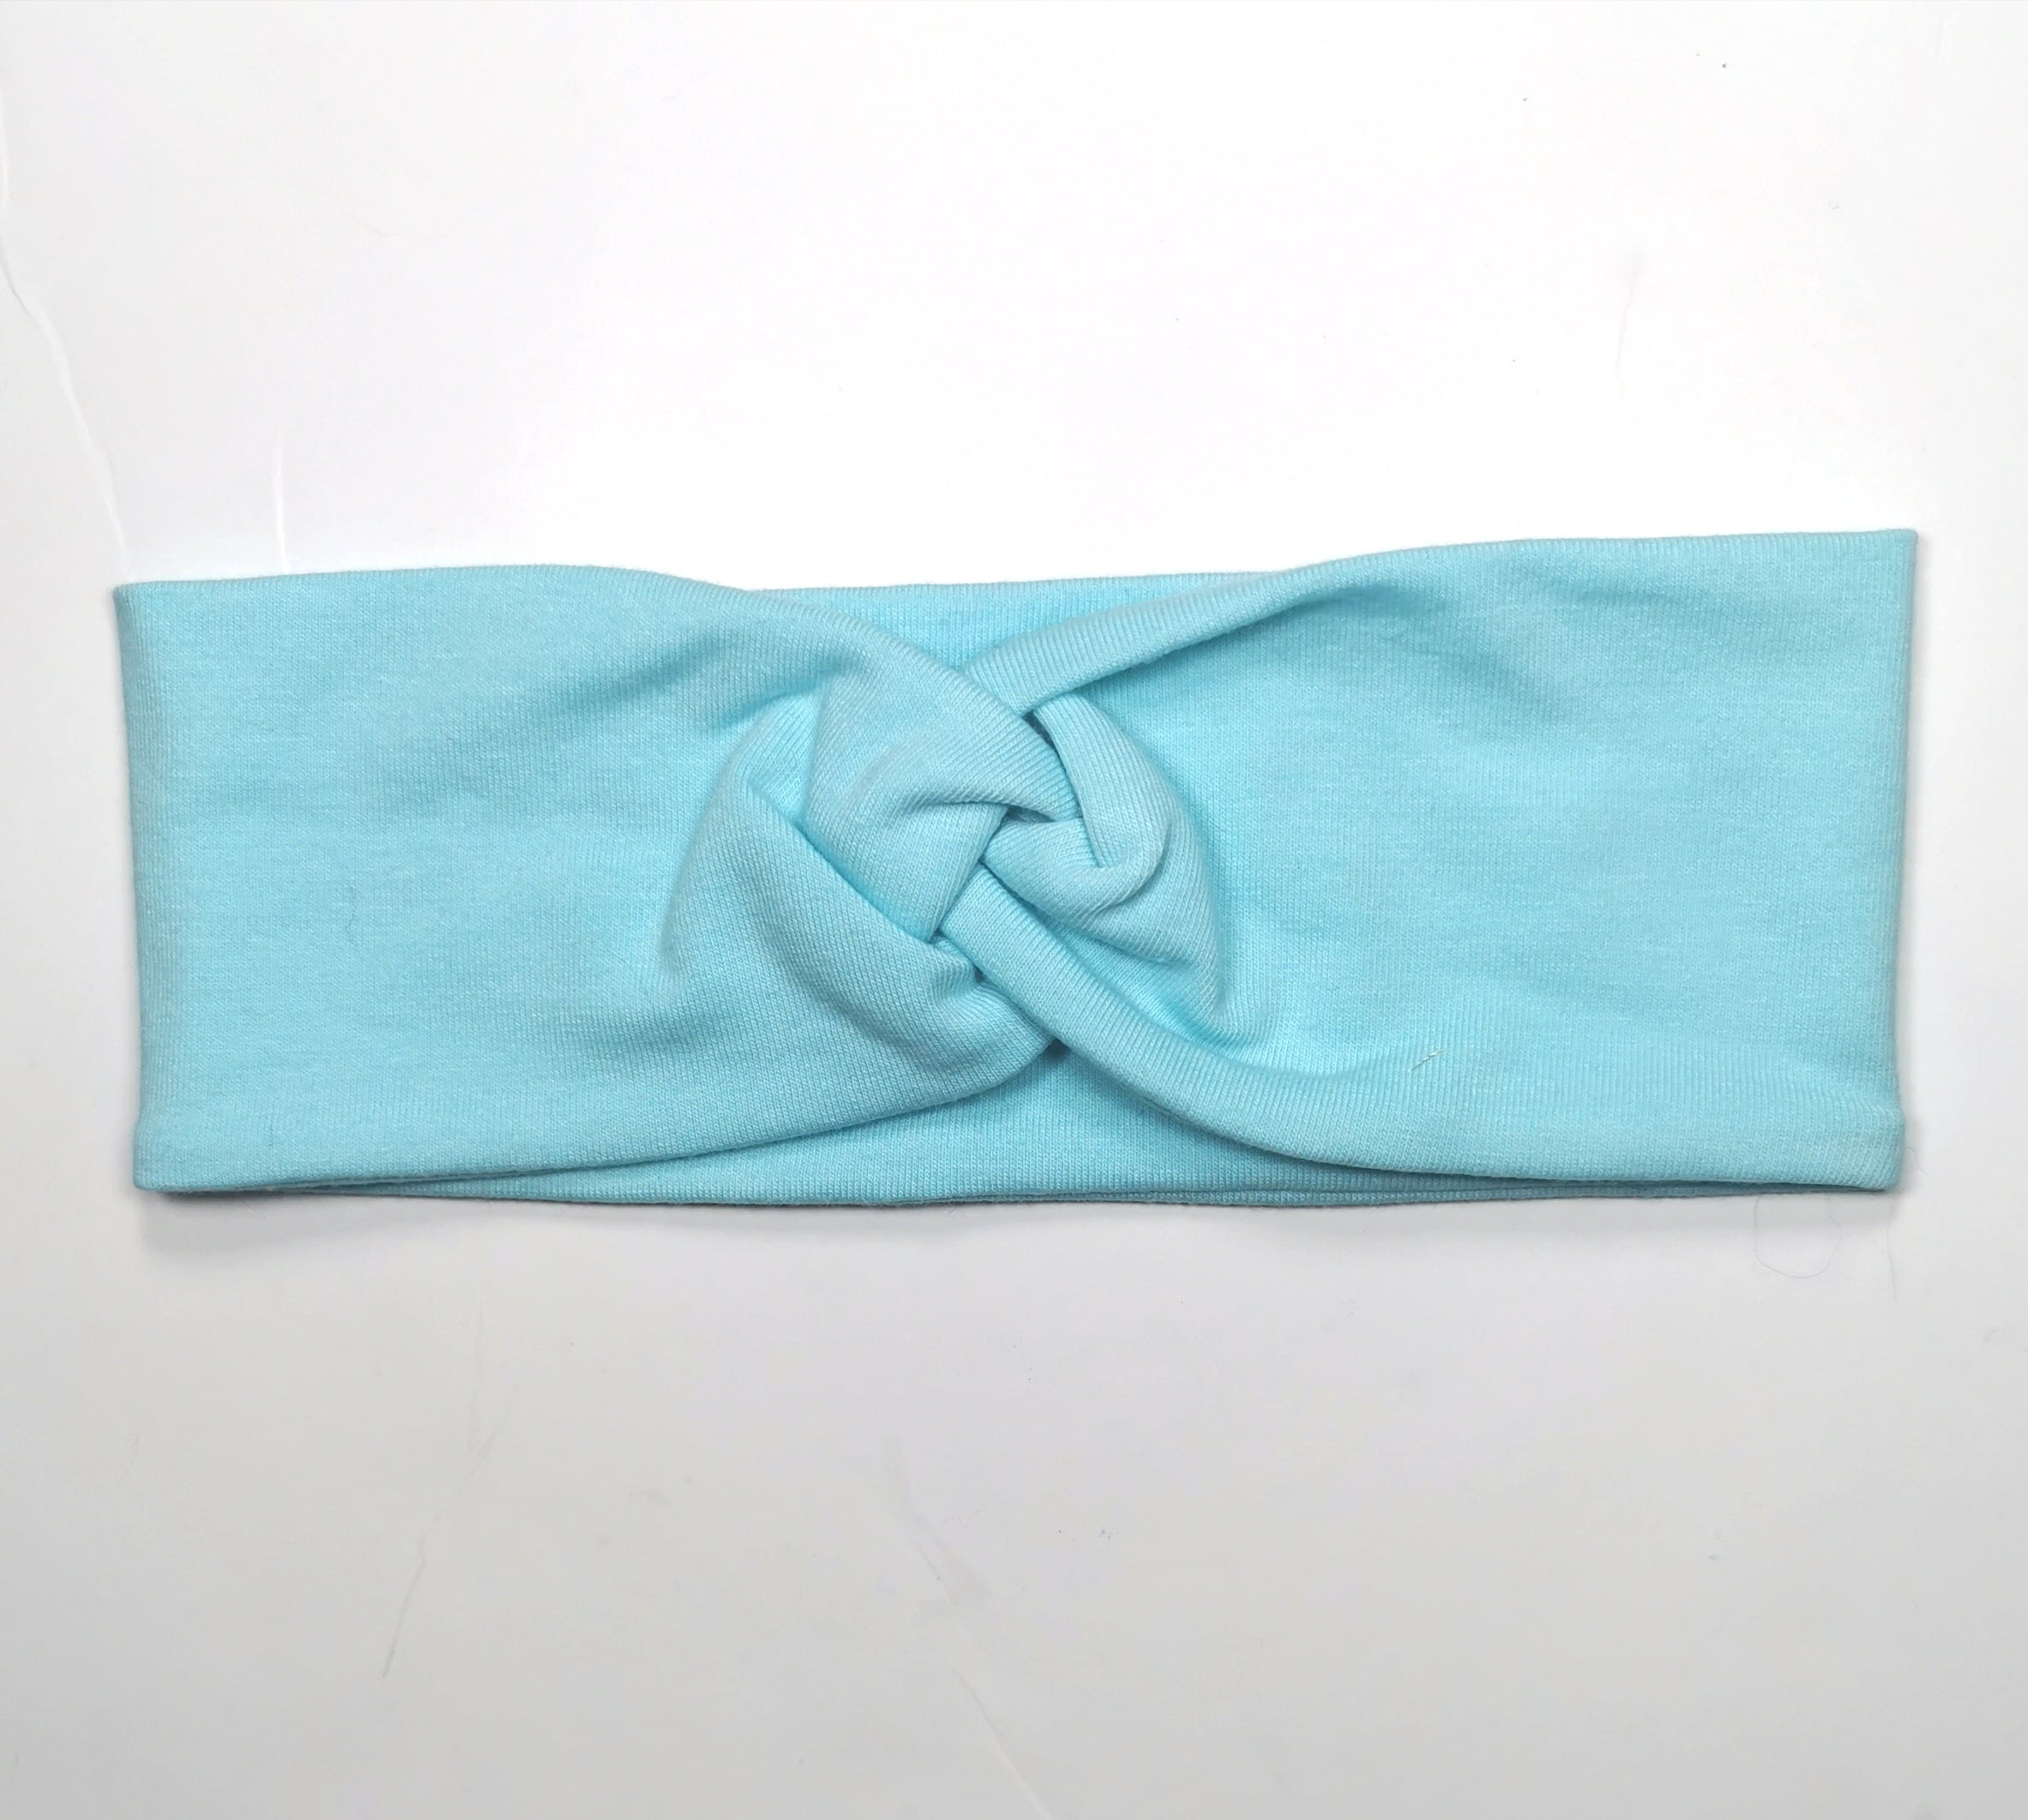 3 in 1 Headband - Teal Blue